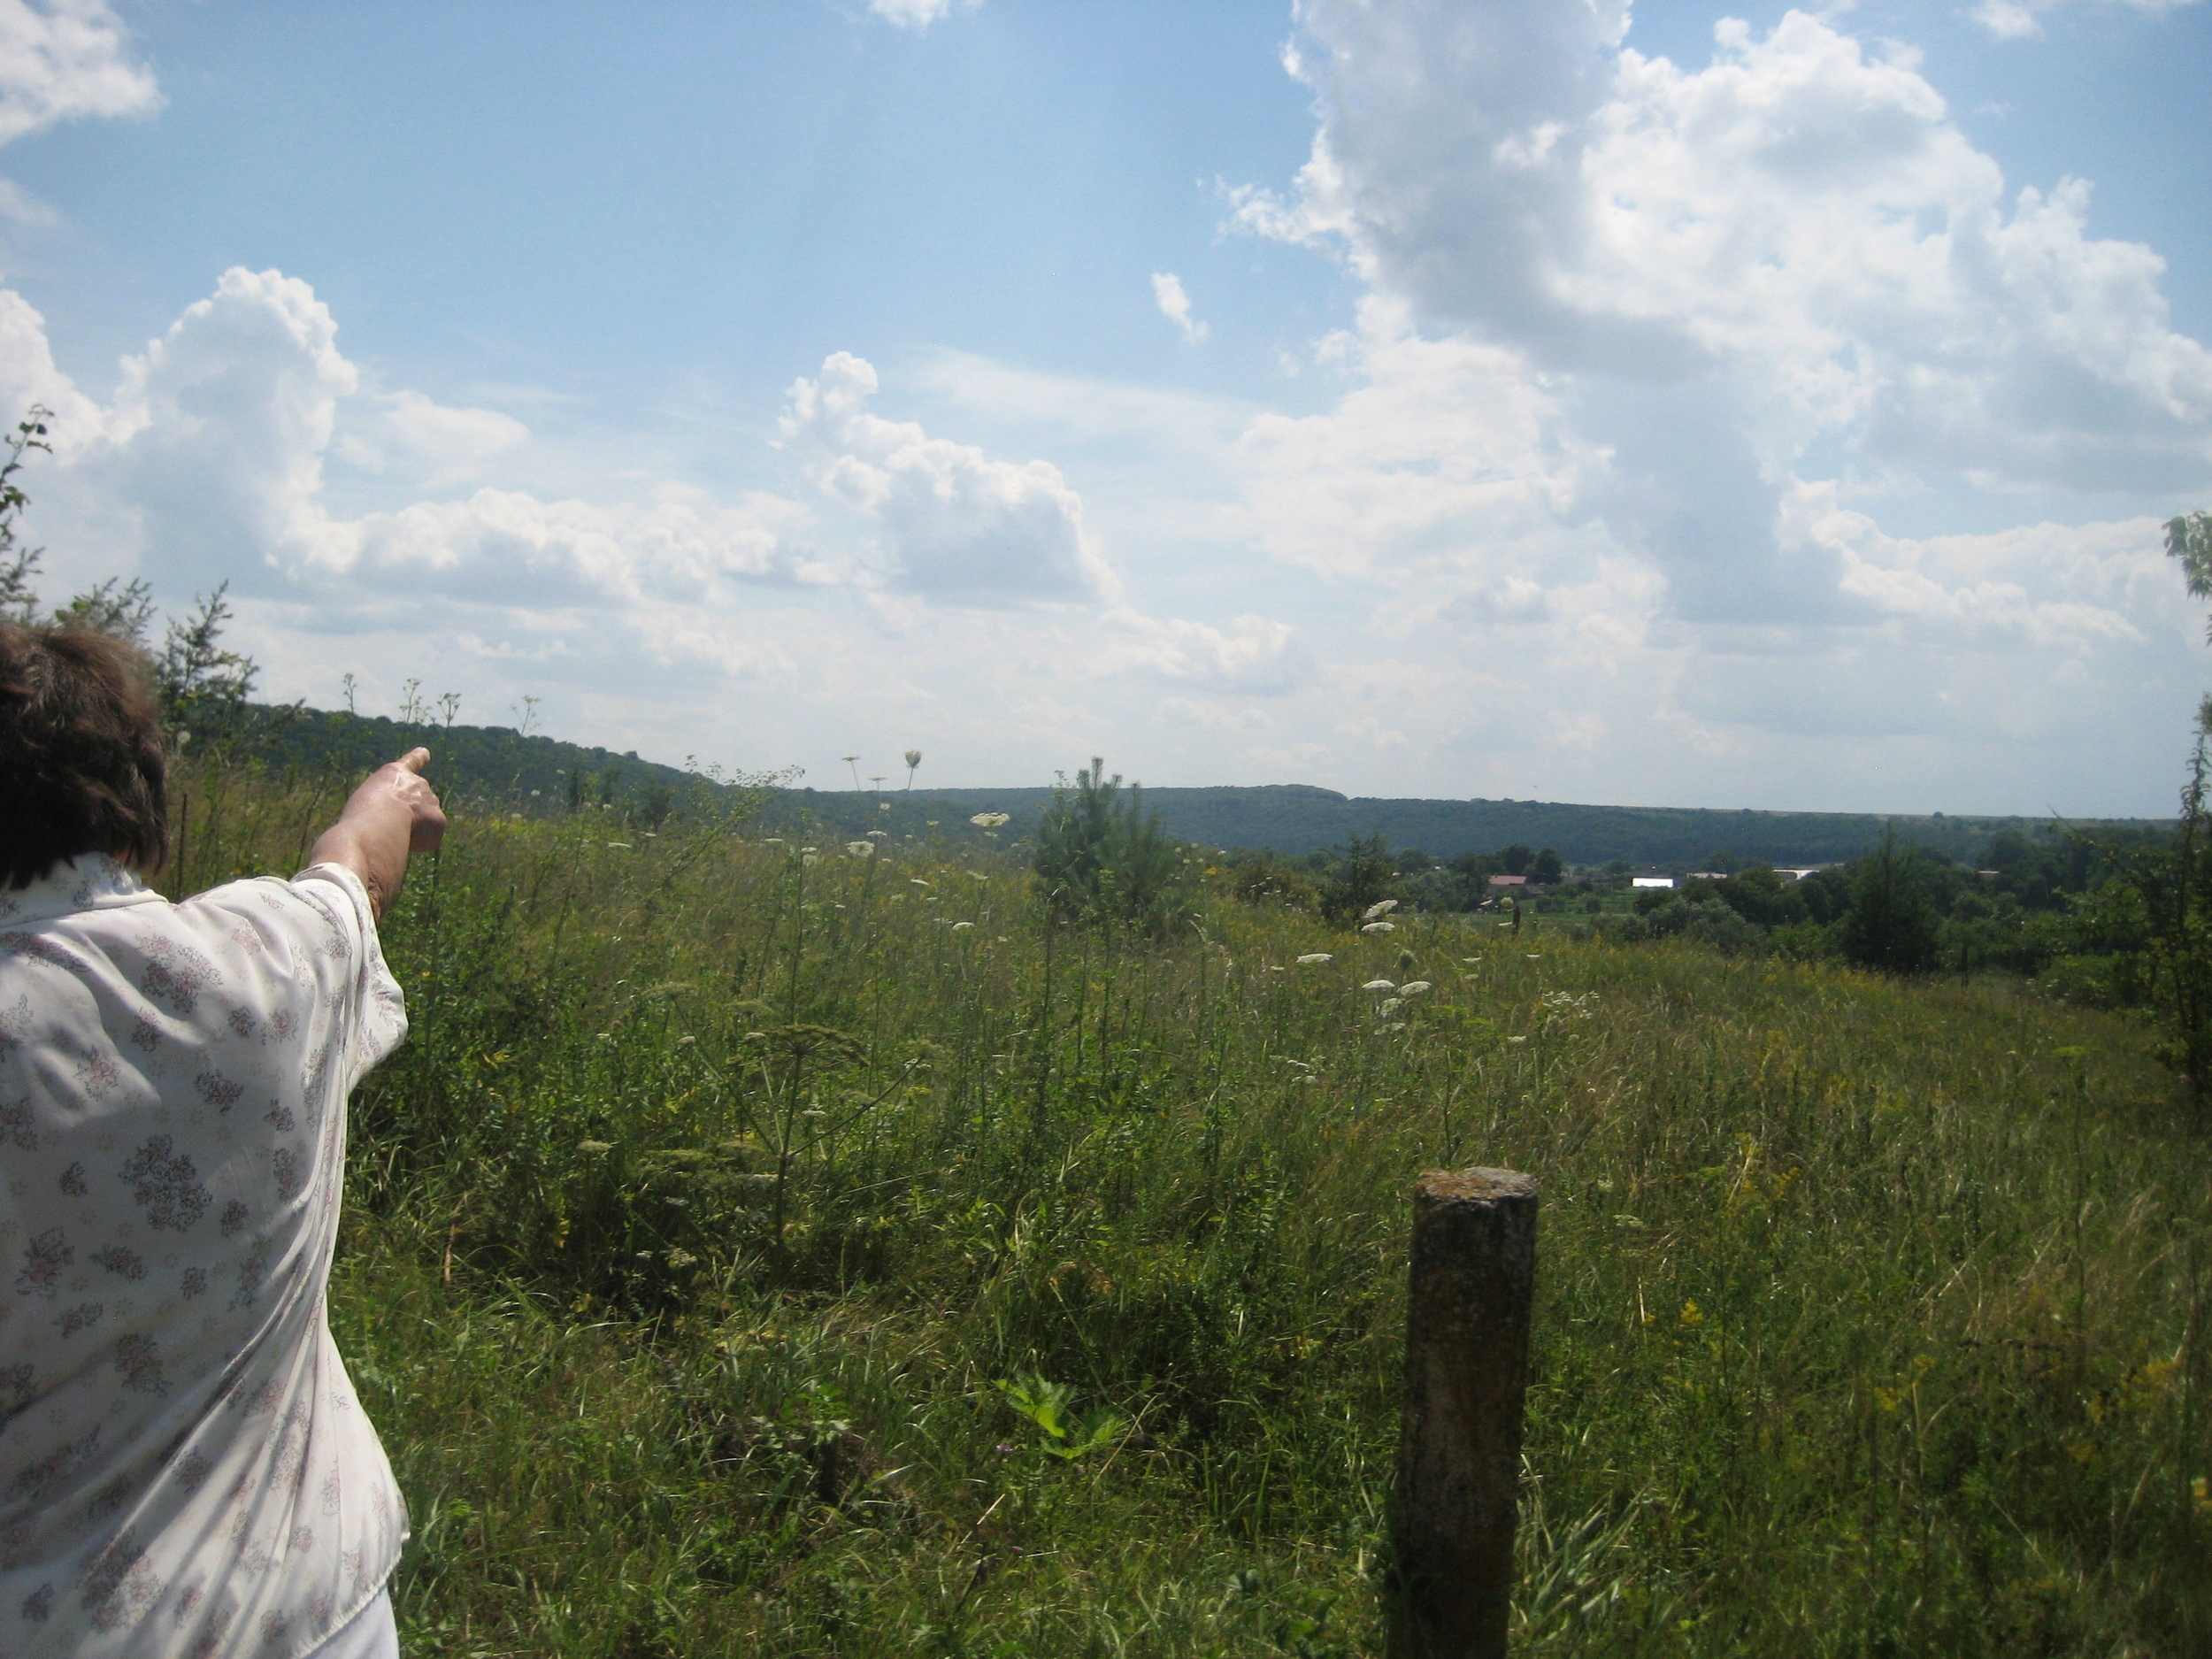 Hanna, in 2014, pointing to the recycling plant near the village.